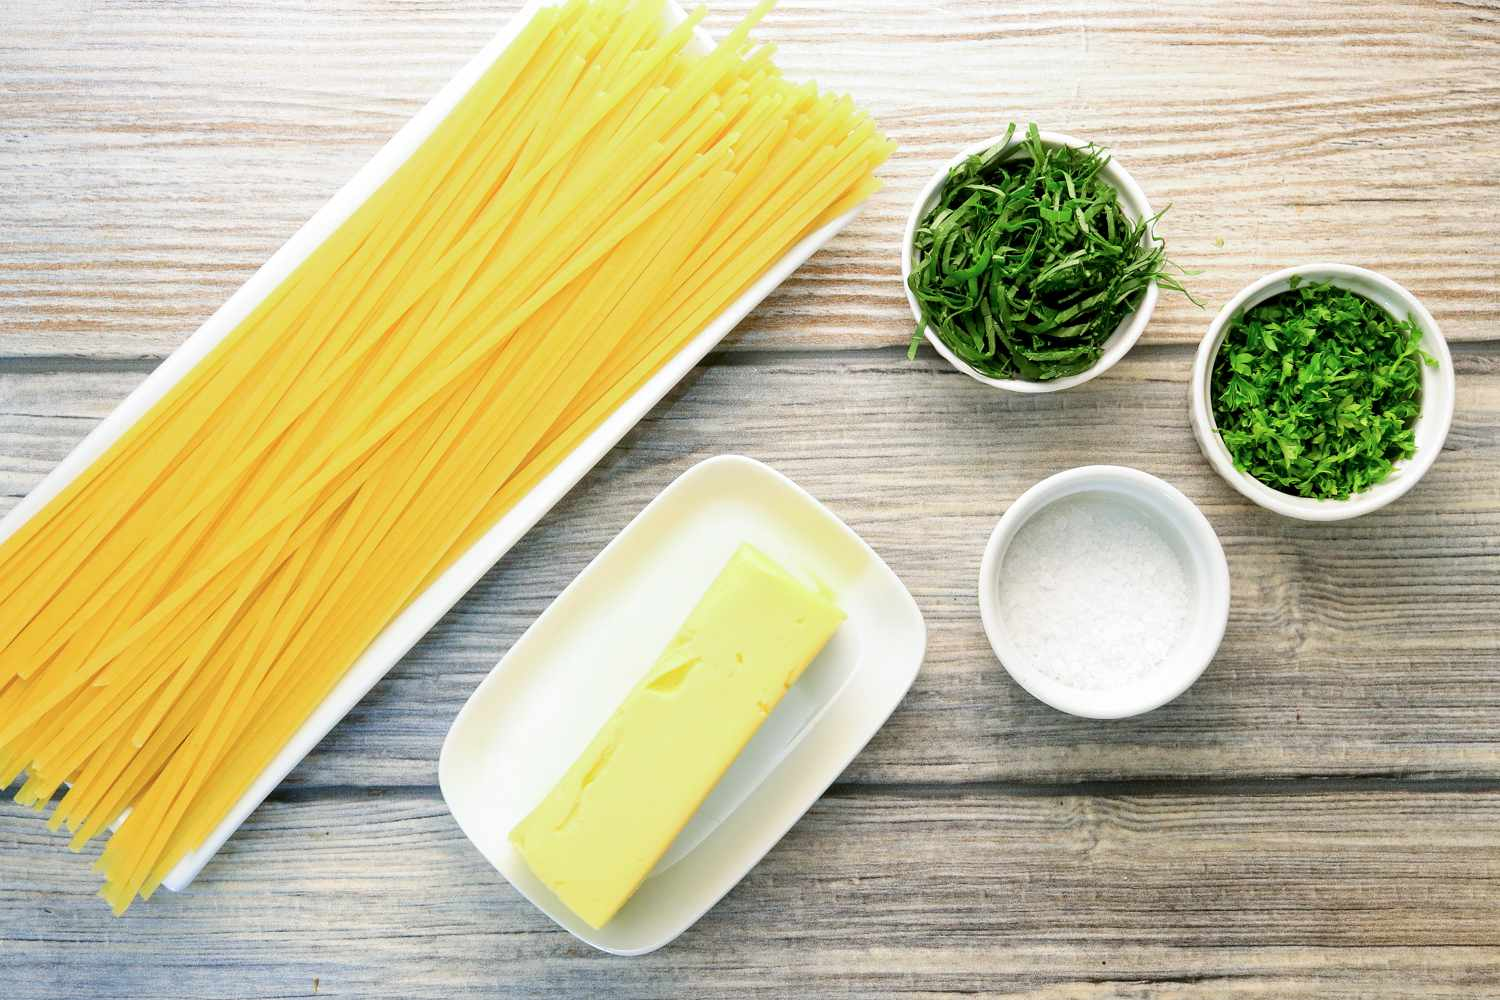 Ingredients for buttered herb pasta